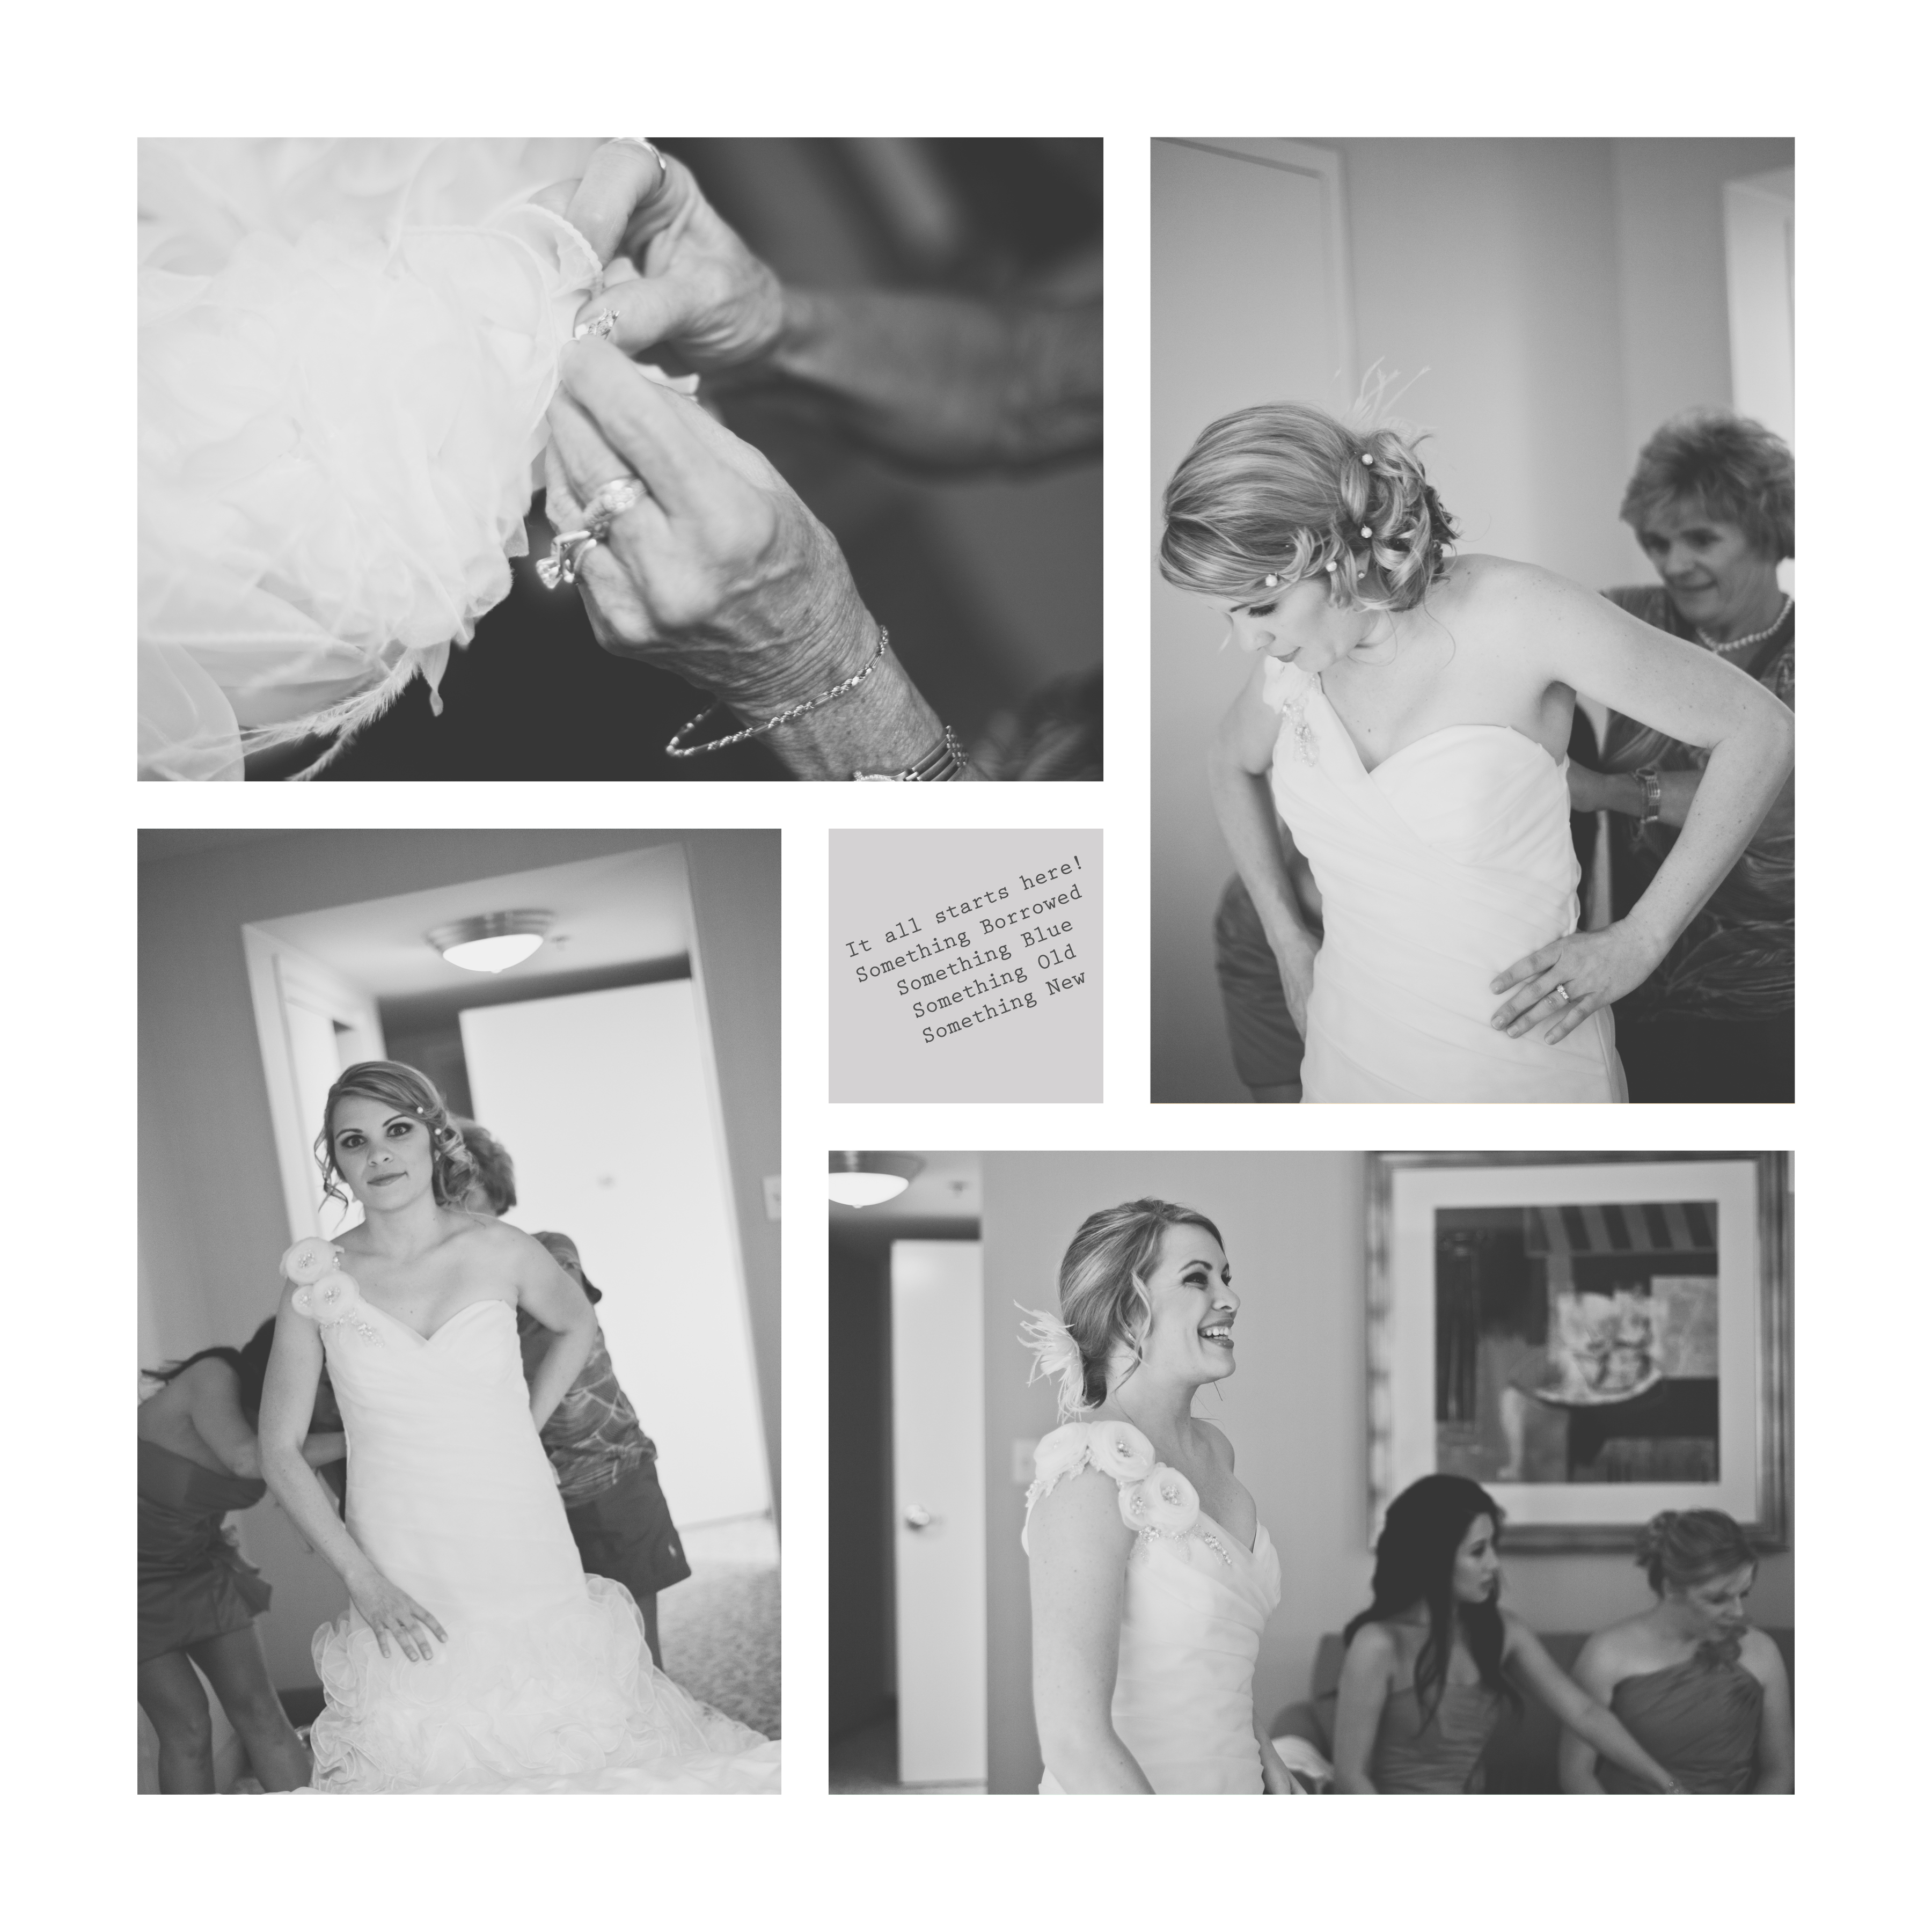 MARRIOTT HOTEL NASHVILLE WEST END BRIDE GETTING READY PUTTING ON DRESS